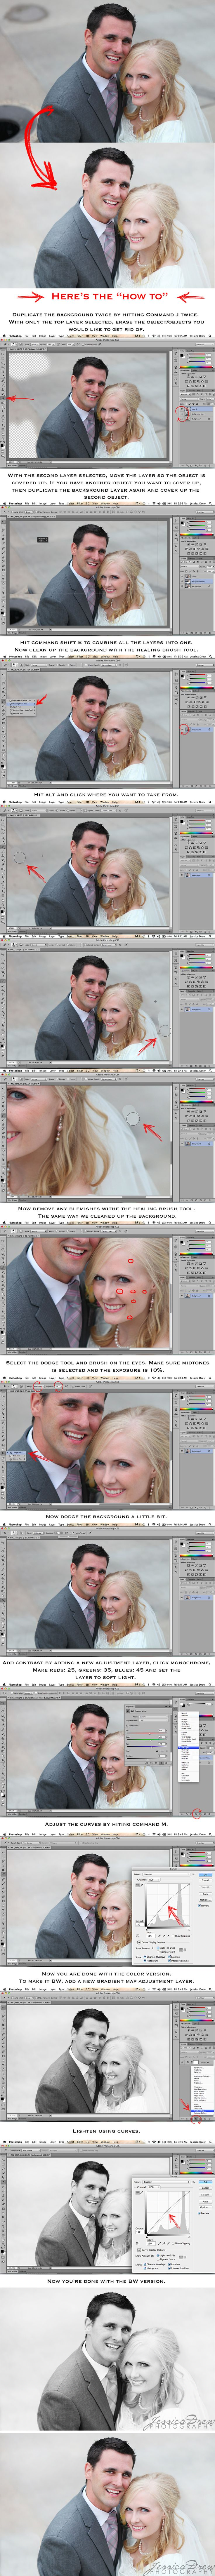 Remove objects from the background of your photo in Adobe Photoshop CS6